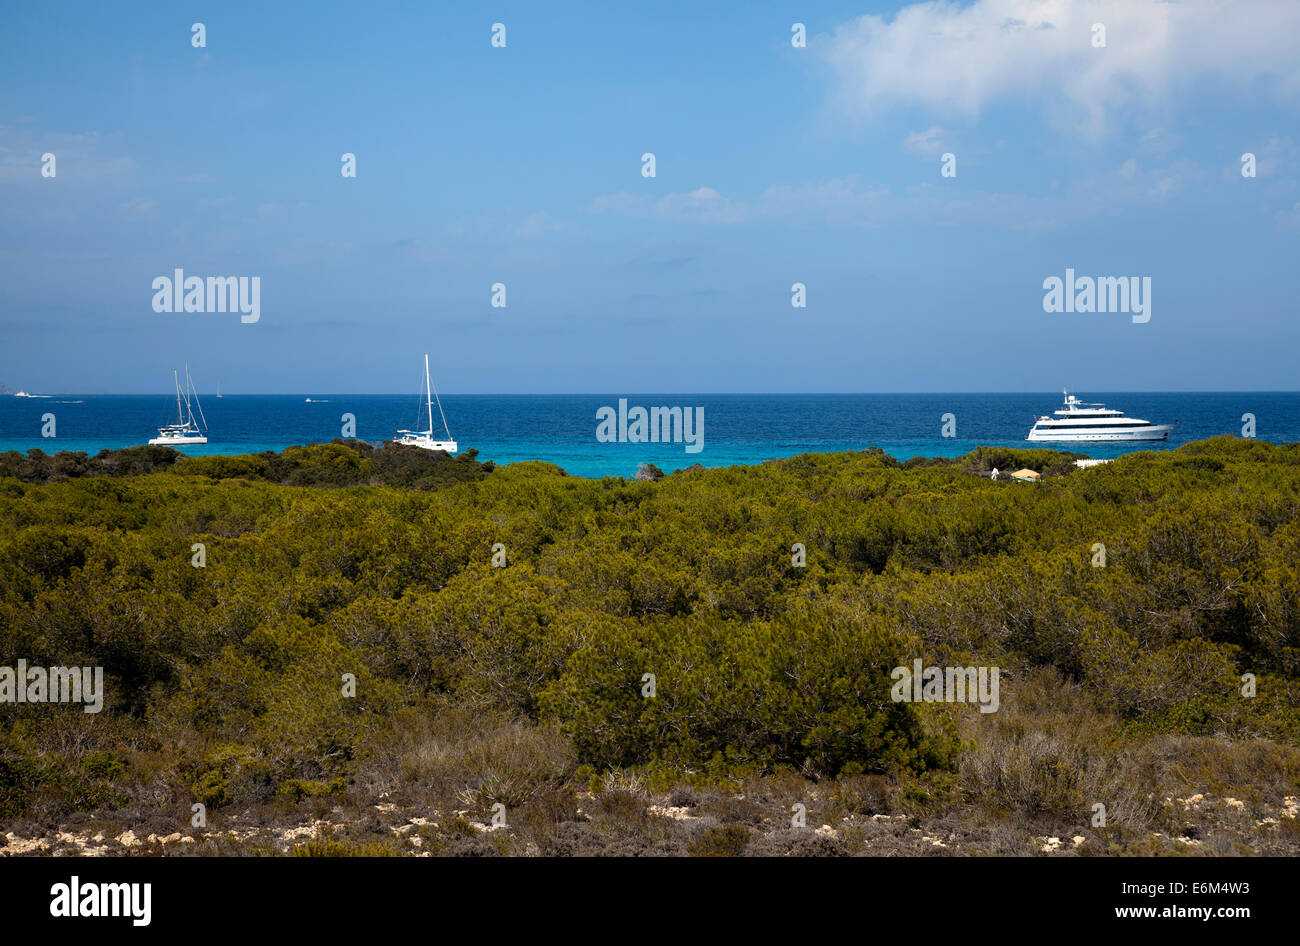 Moored Yachts Offshore at Es Cavallet in Ibiza - Stock Image